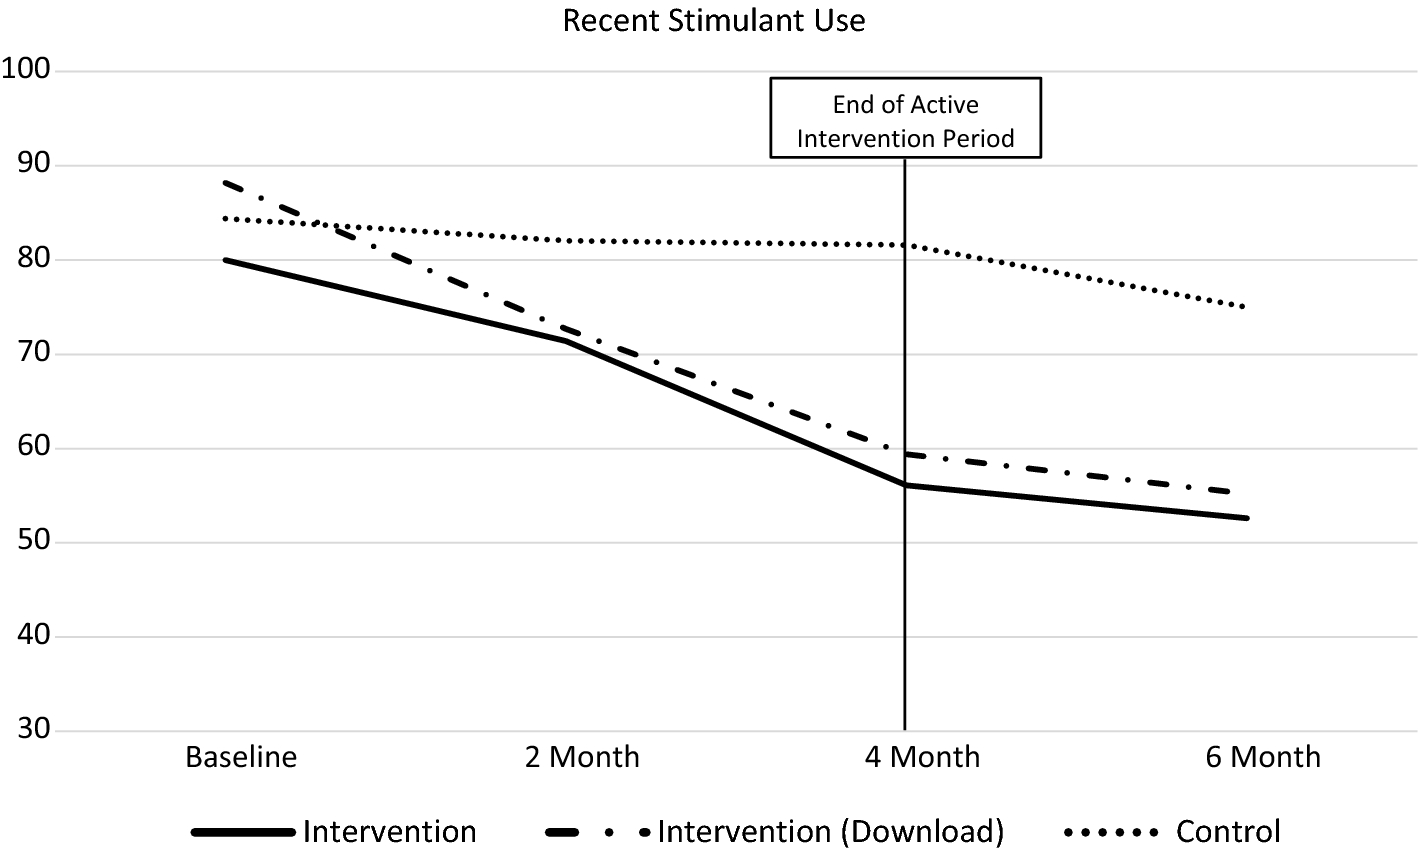 A Pilot Study of a Mobile App to Support HIV Antiretroviral